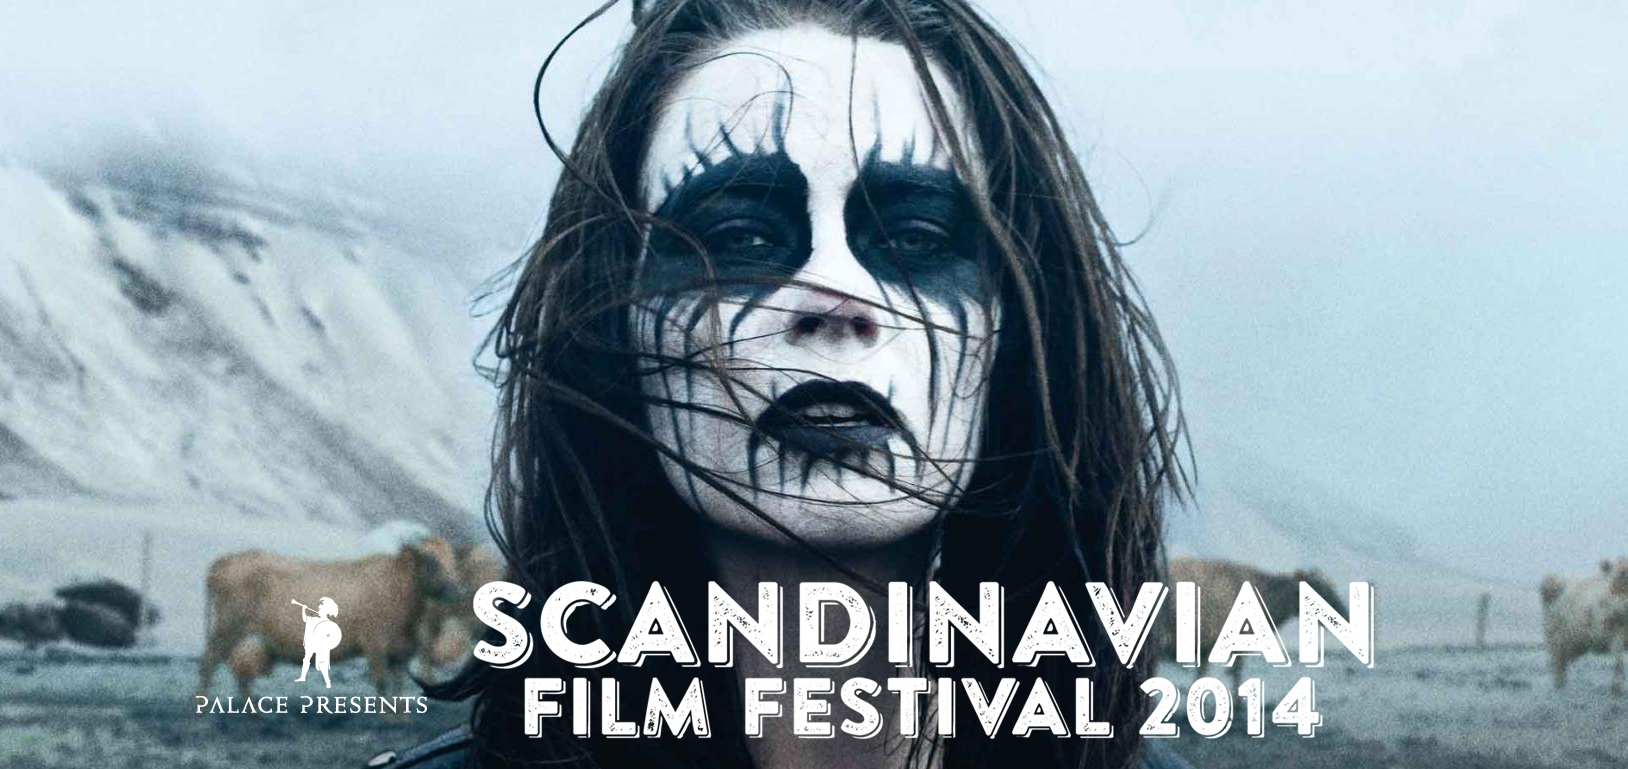 Metalheads and Deep Sea Divers – A Look at Scandinavian Film Festival Australia